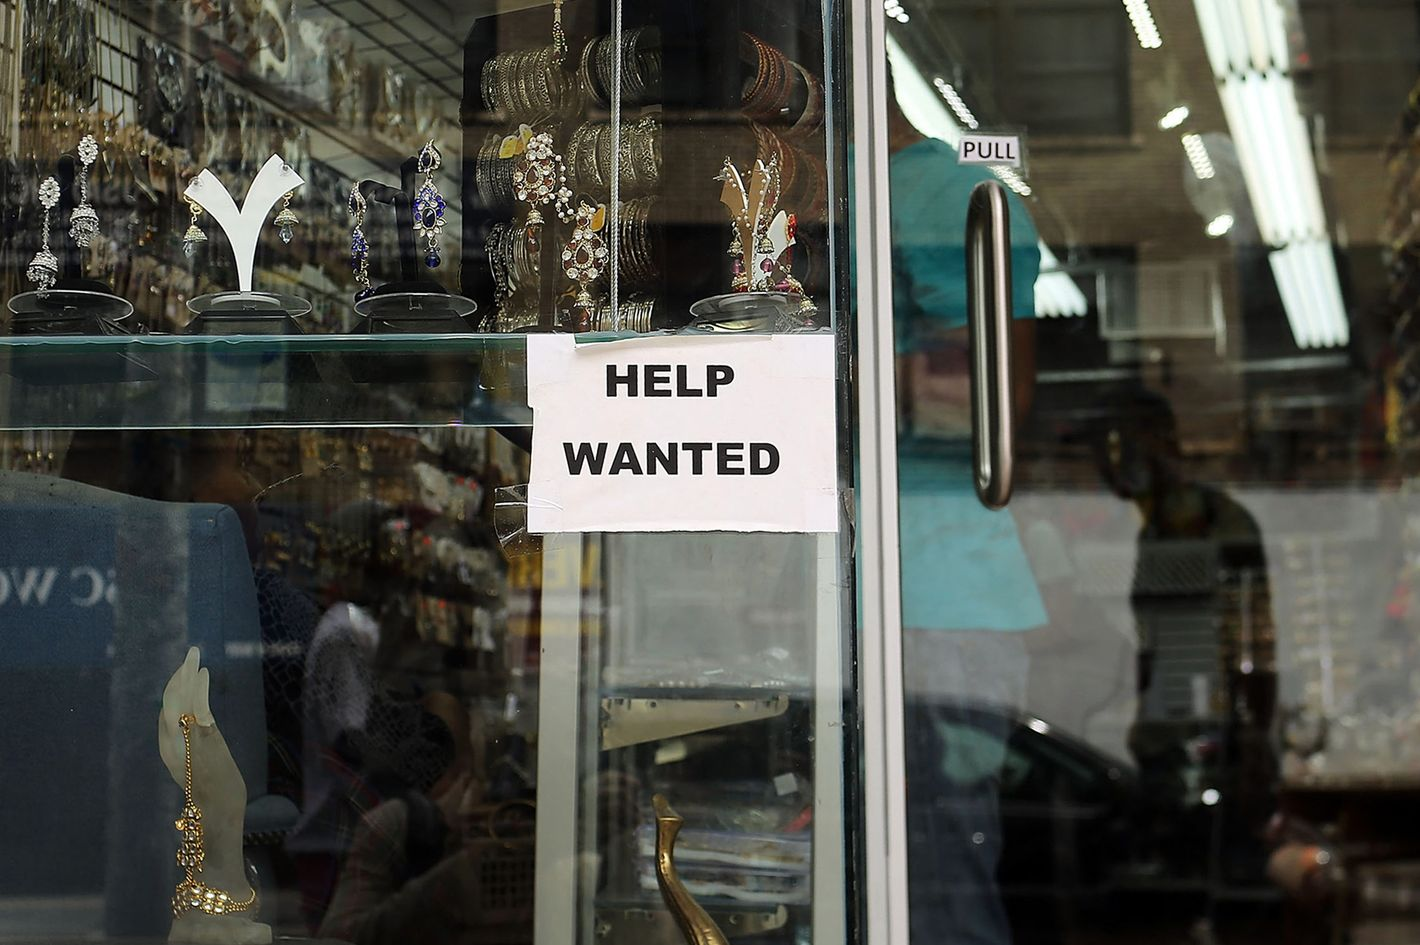 "NEW YORK, NY - AUGUST 07:  A ""help wanted"" sign is viewed in the window of a store on August 7, 2012 in New York City.  In a further sign that the American economy may be improving the U.S. labor Department said Tuesday that employers posted the most job openings in four years in June. The data comes after Friday?s news that said employers in July added the most jobs in five months.  (Photo by Spencer Platt/Getty Images)"